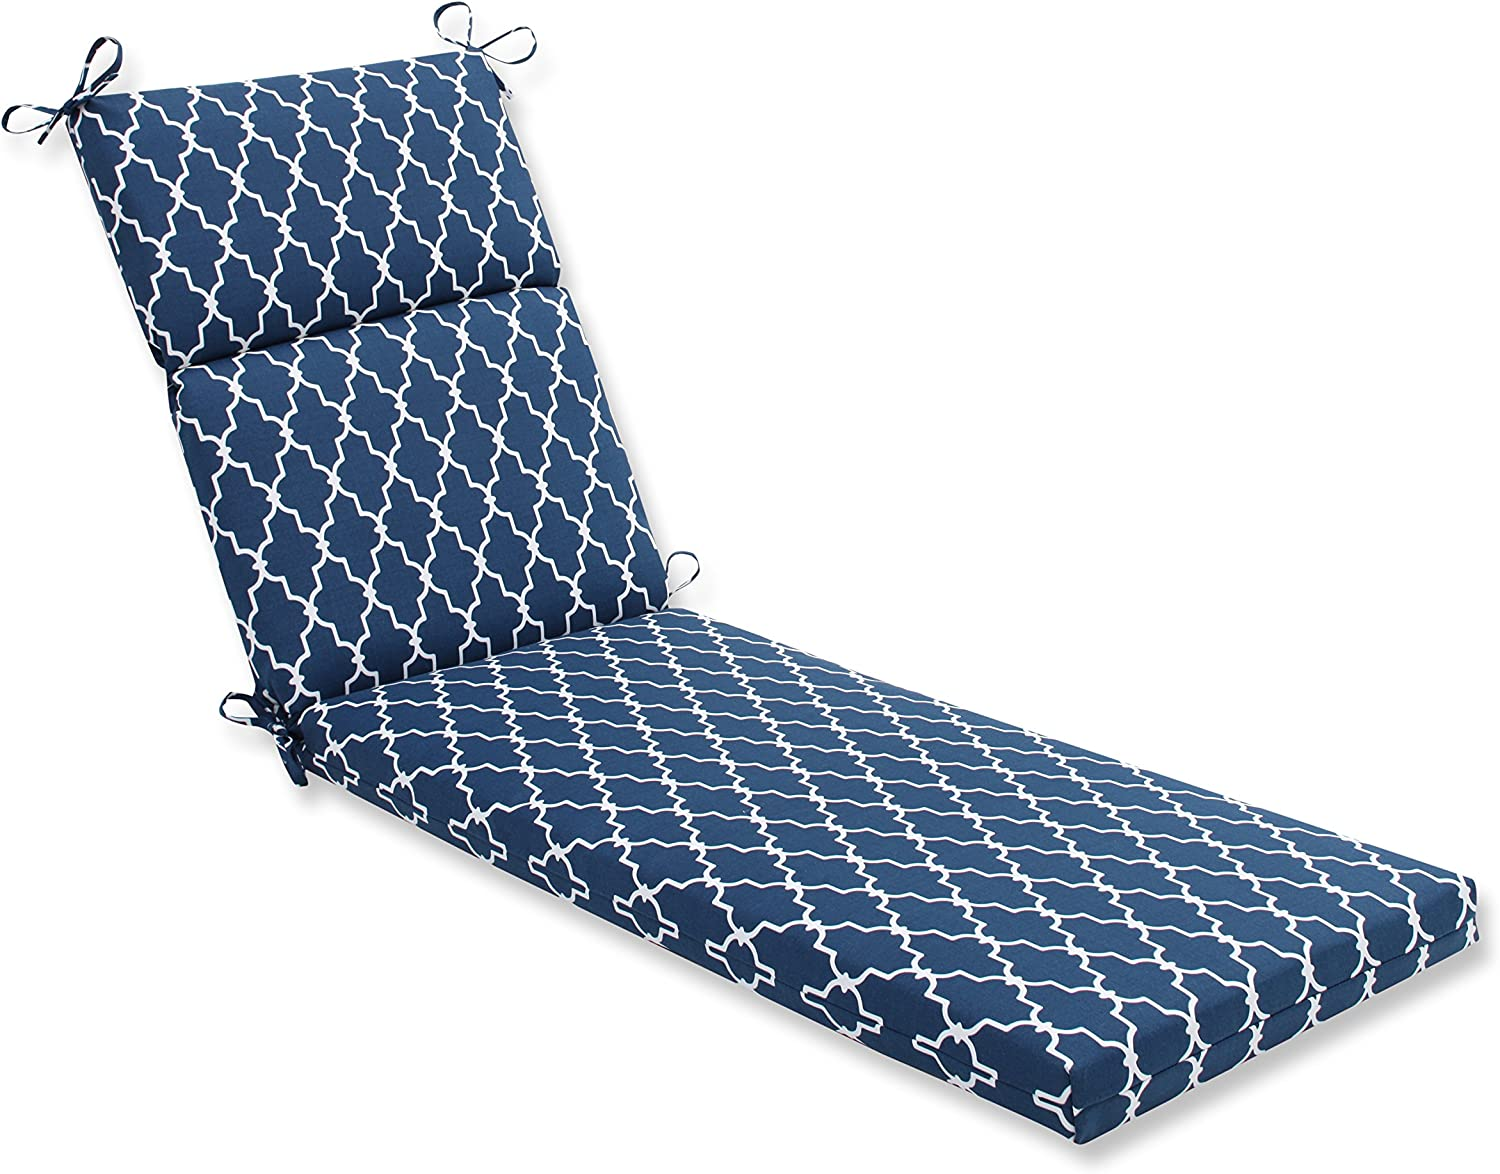 Pillow Perfect Outdoor Indoor Garden Gate Chaise Lounge Cushion, Navy